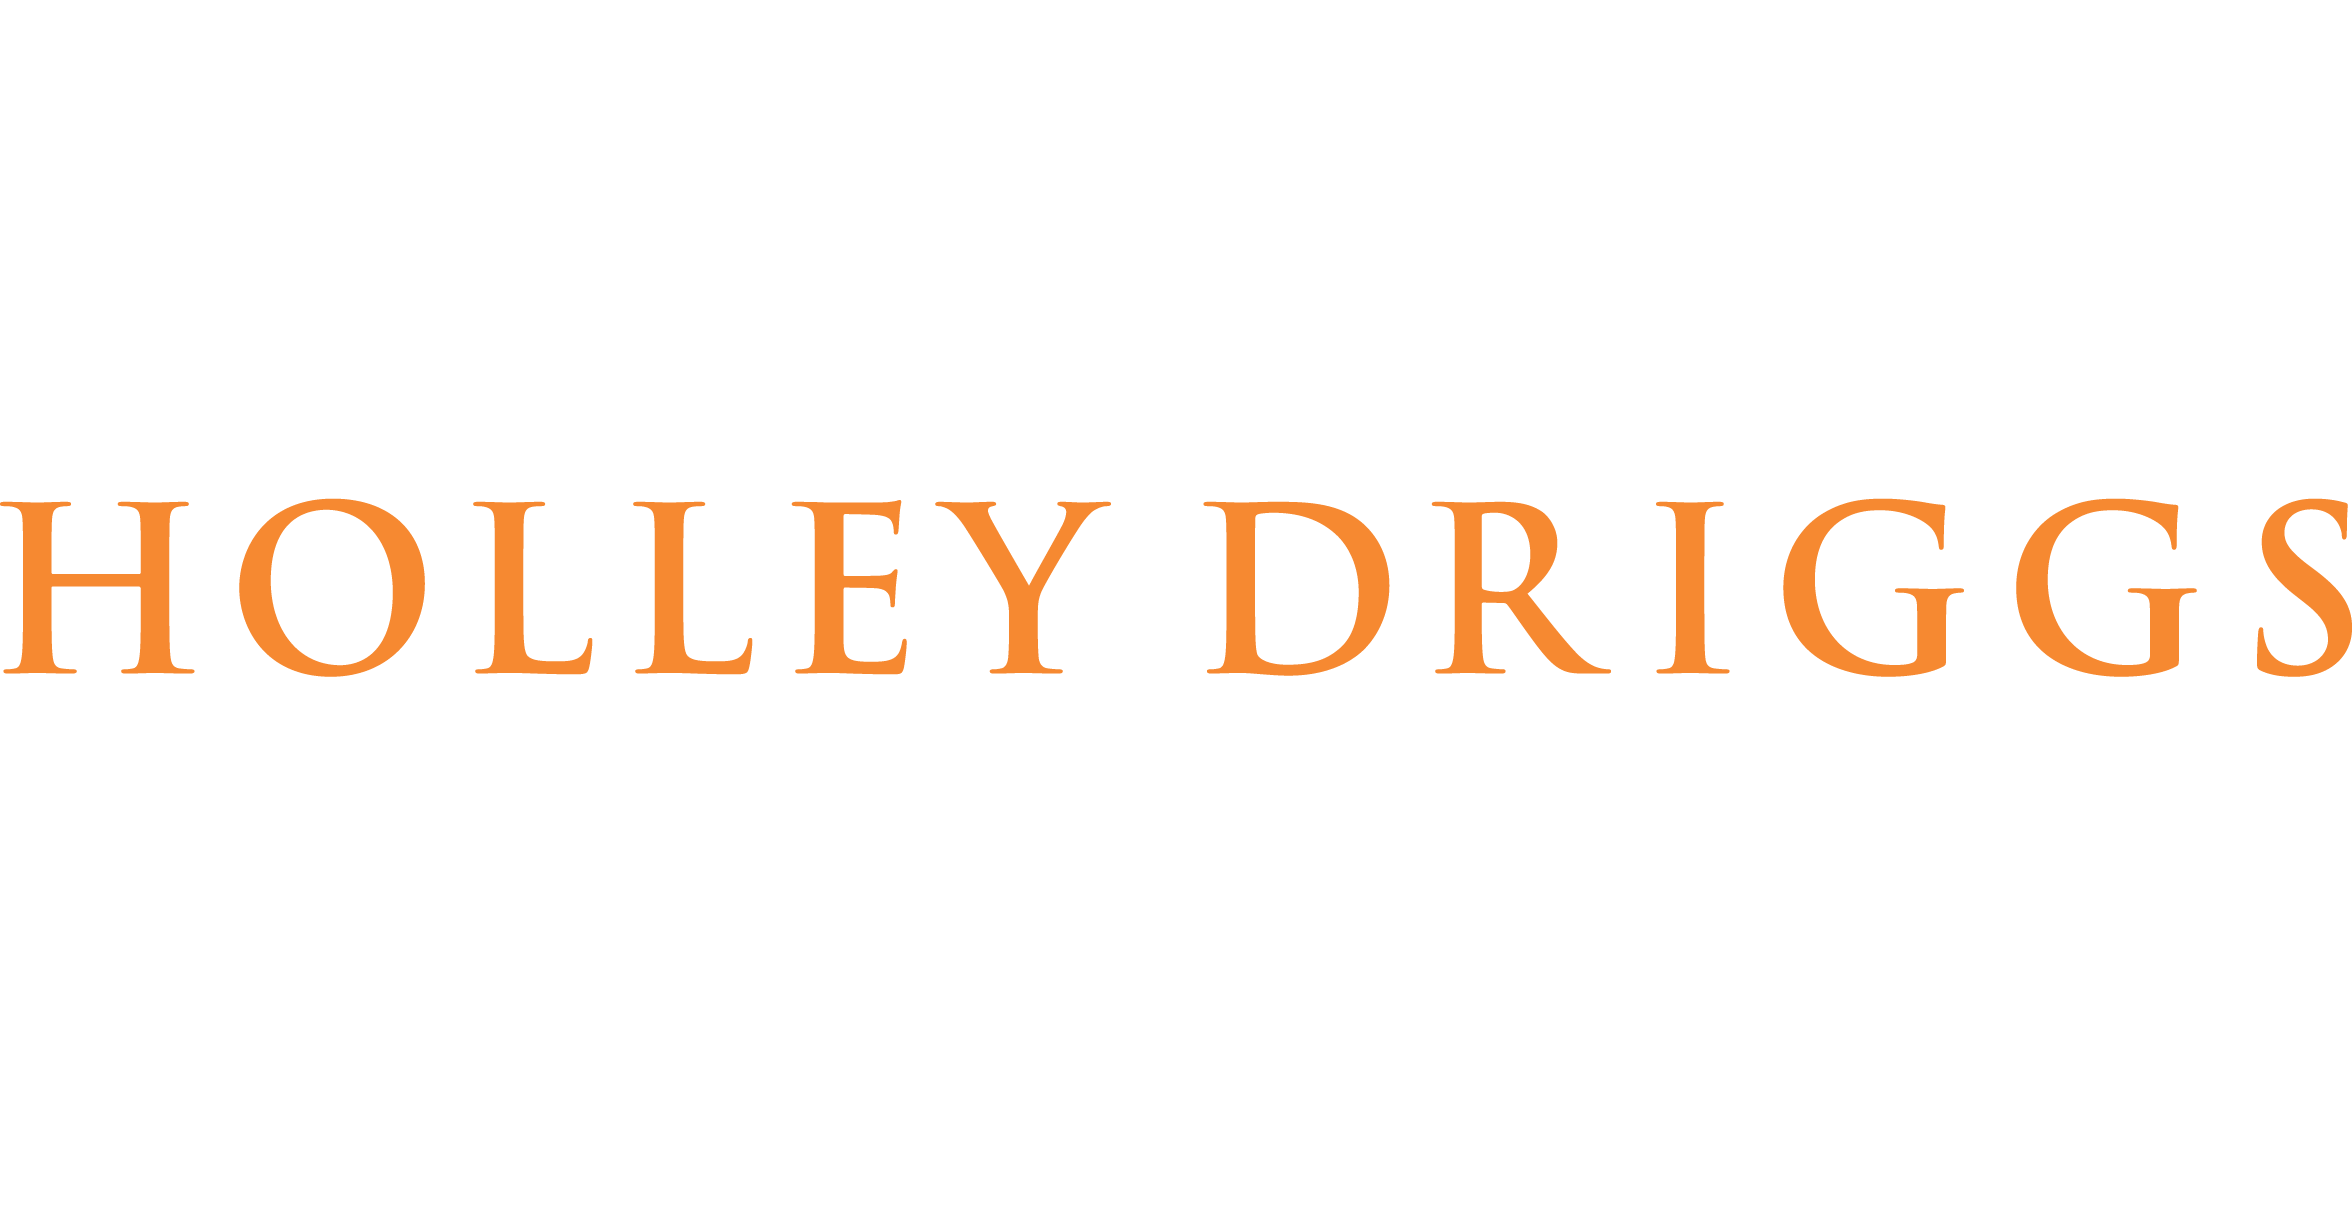 Holley Driggs Law Firm